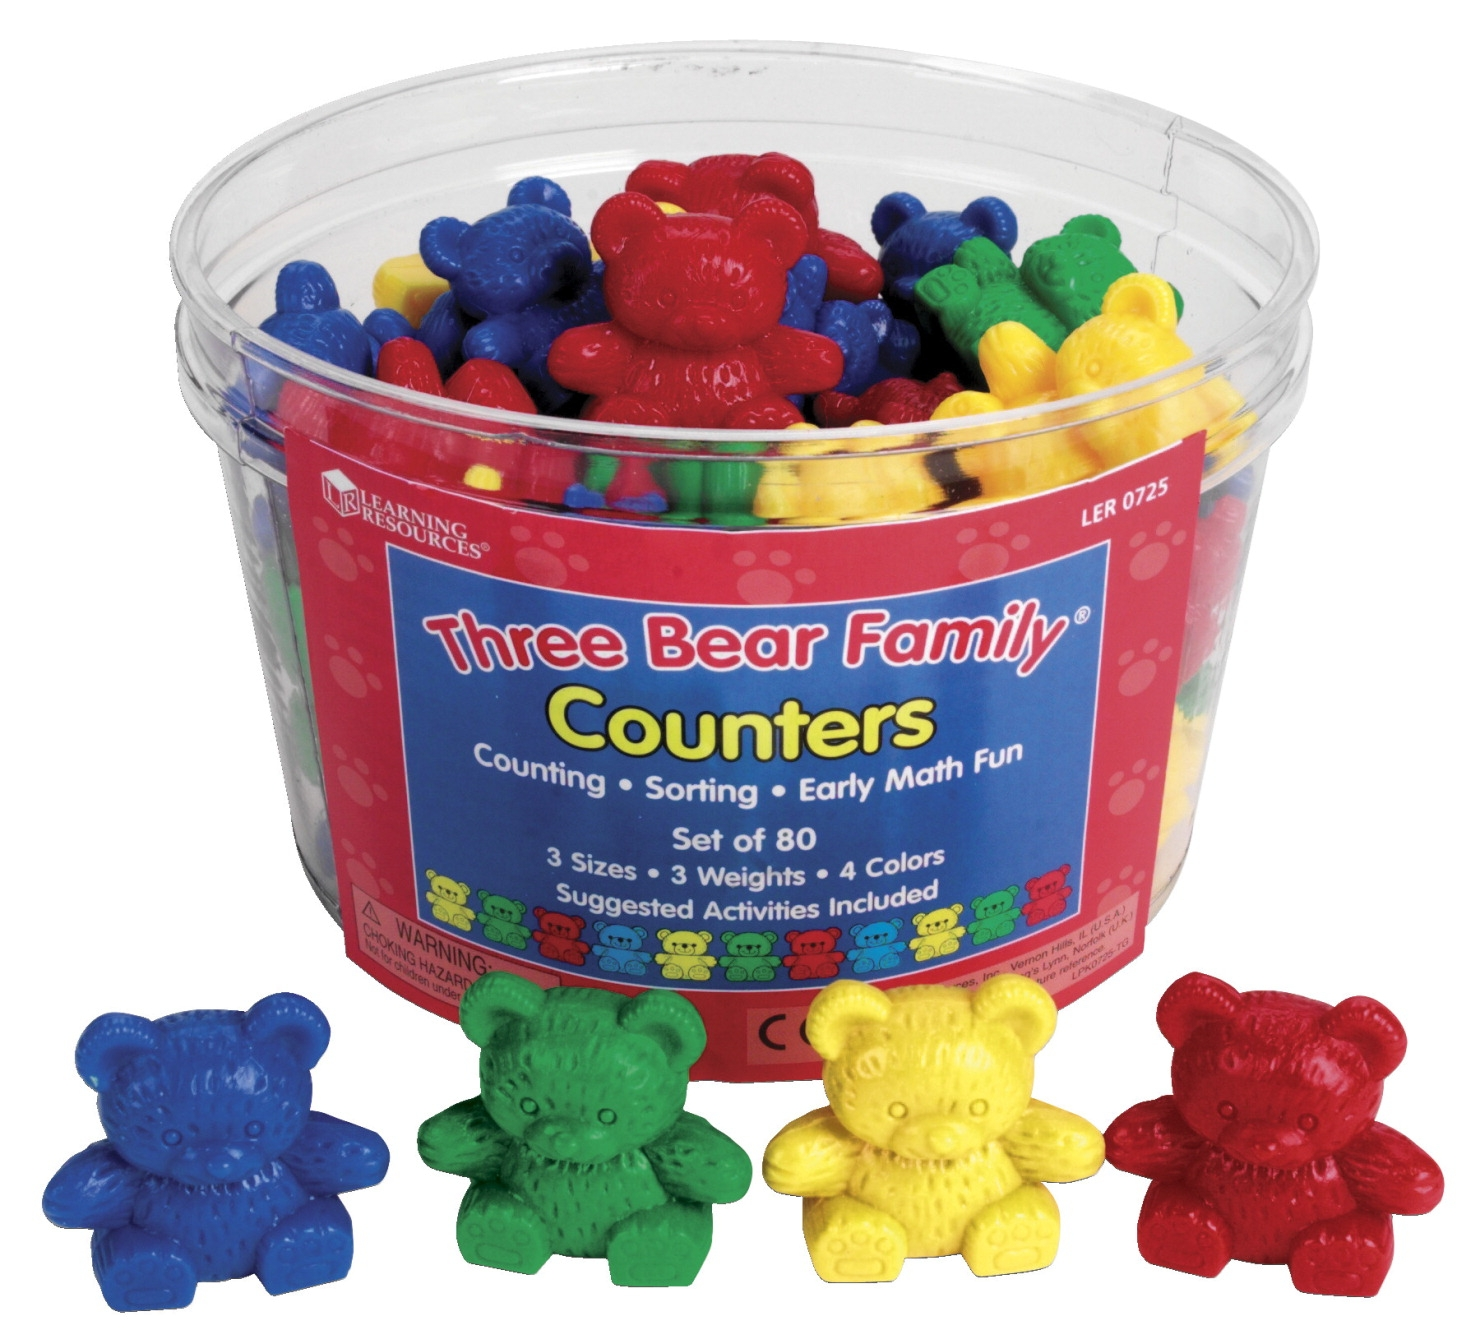 Toys Math Counters - 031-8306 - Learning Resources Three Bear Family Counters 031-8306